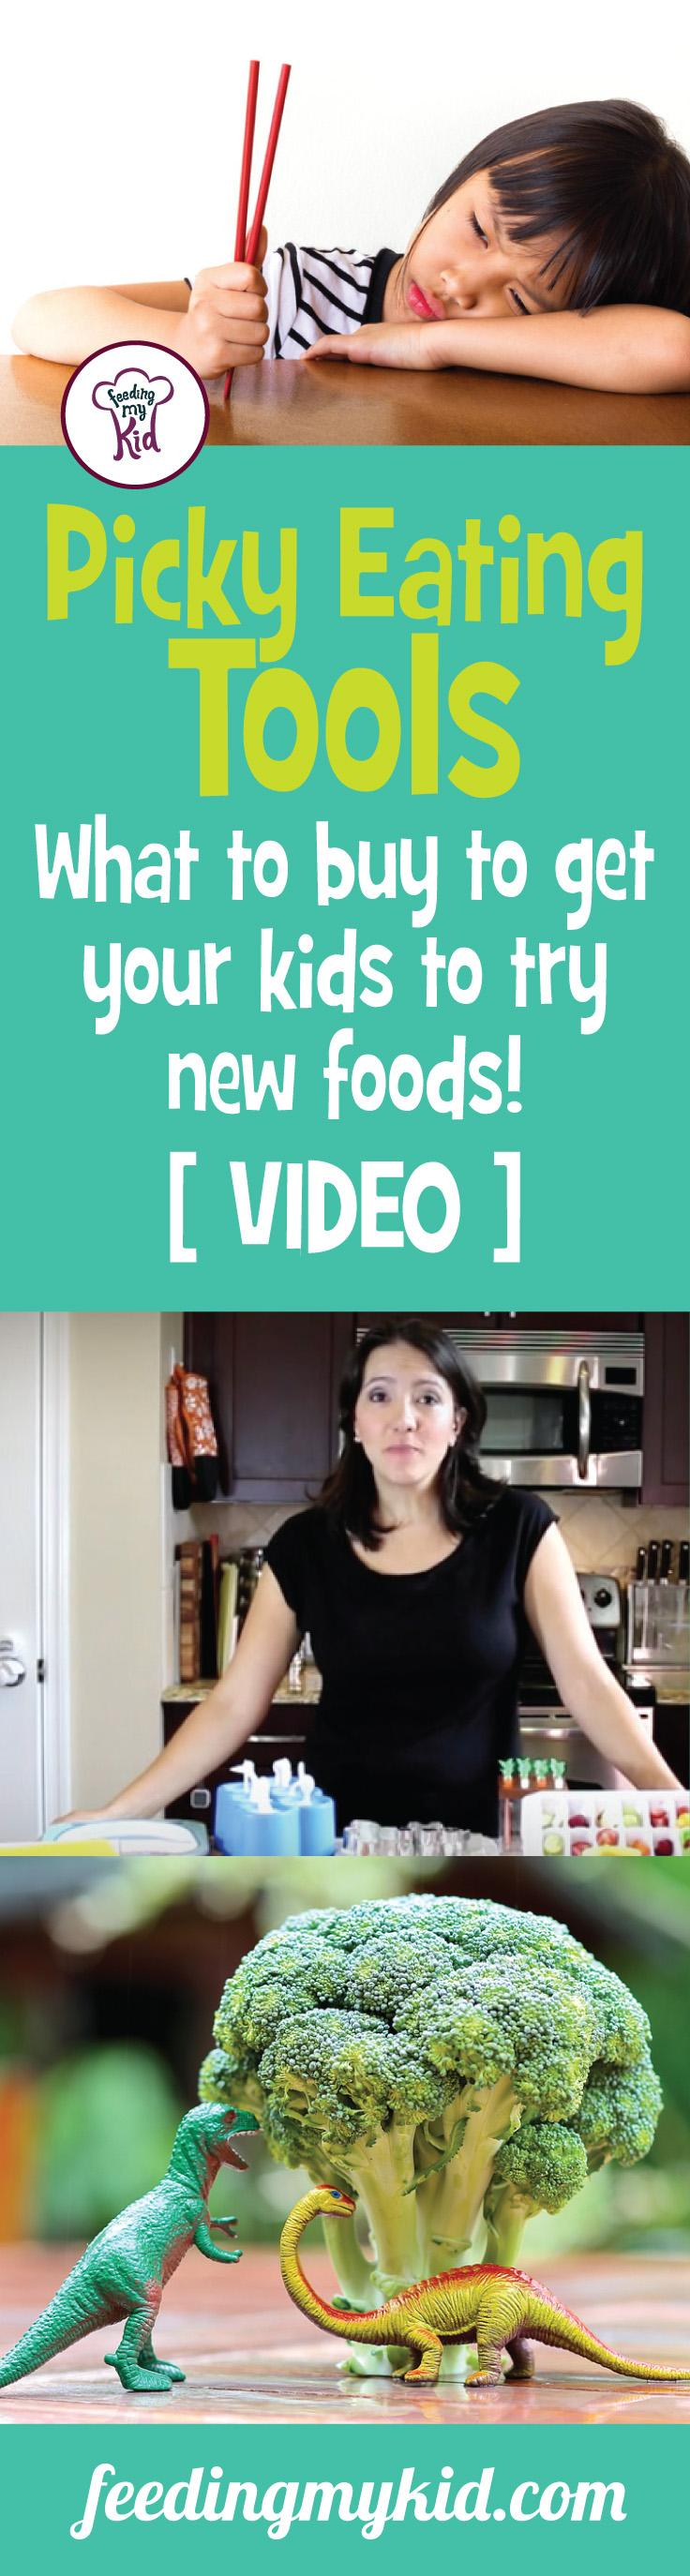 This is a must pin! Check out this great video about picky eating tools! This will help you get your kid to eat right again! Feeding My Kid is a site filled with all the information you need on how to raise your kids and take care of your family; from healthy tips to nutritious recipes. We have everything you need! #videos #pickyeating